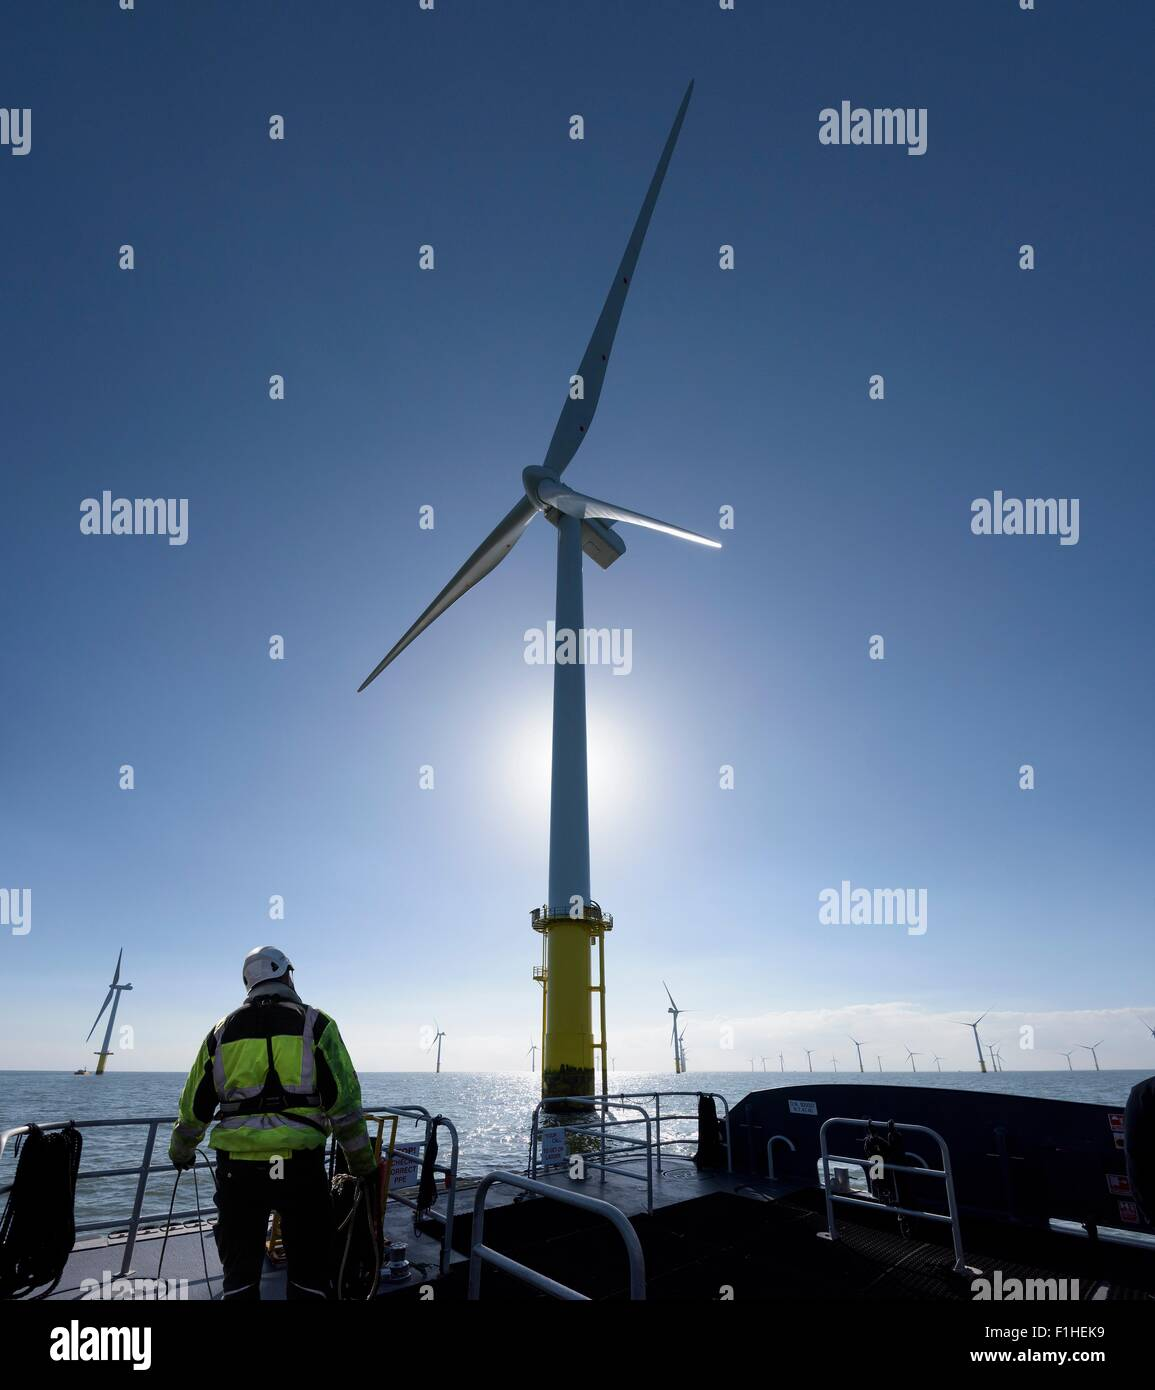 Worker on tender service ship on offshore windfarm - Stock Image